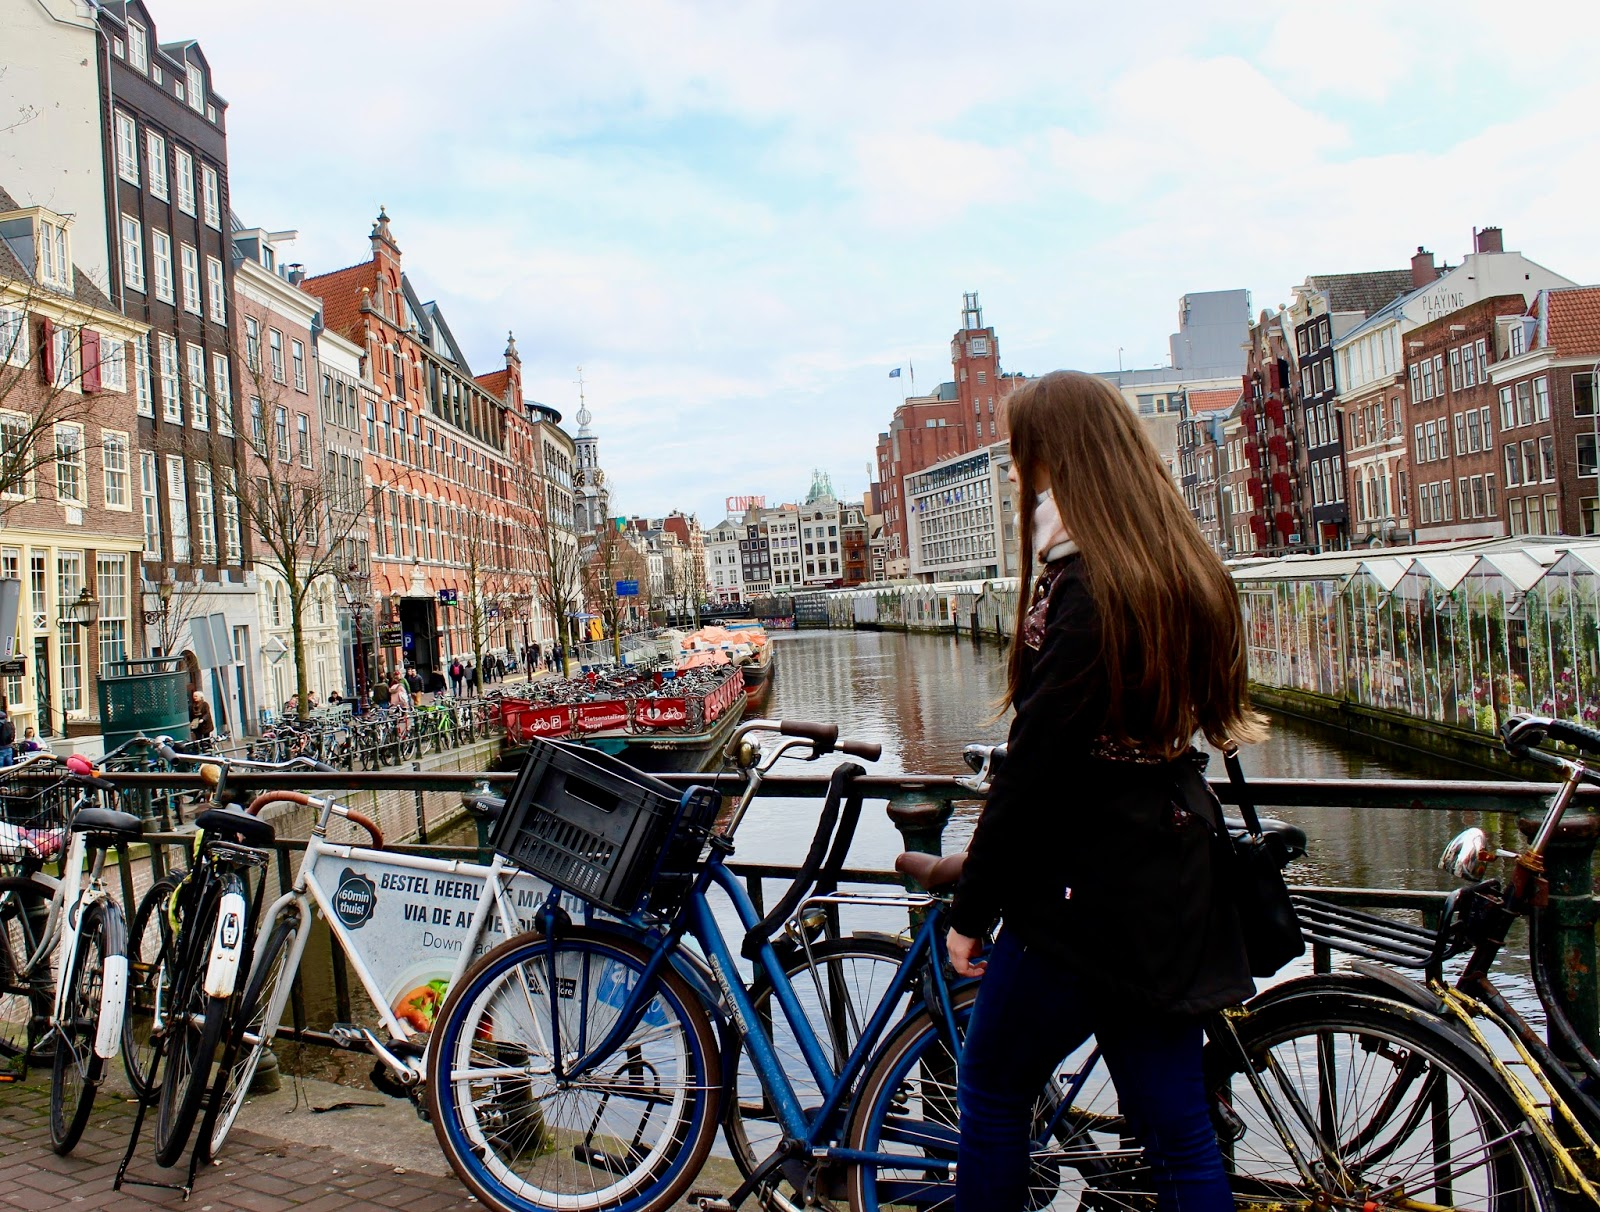 Canals of Amsterdam Bridge